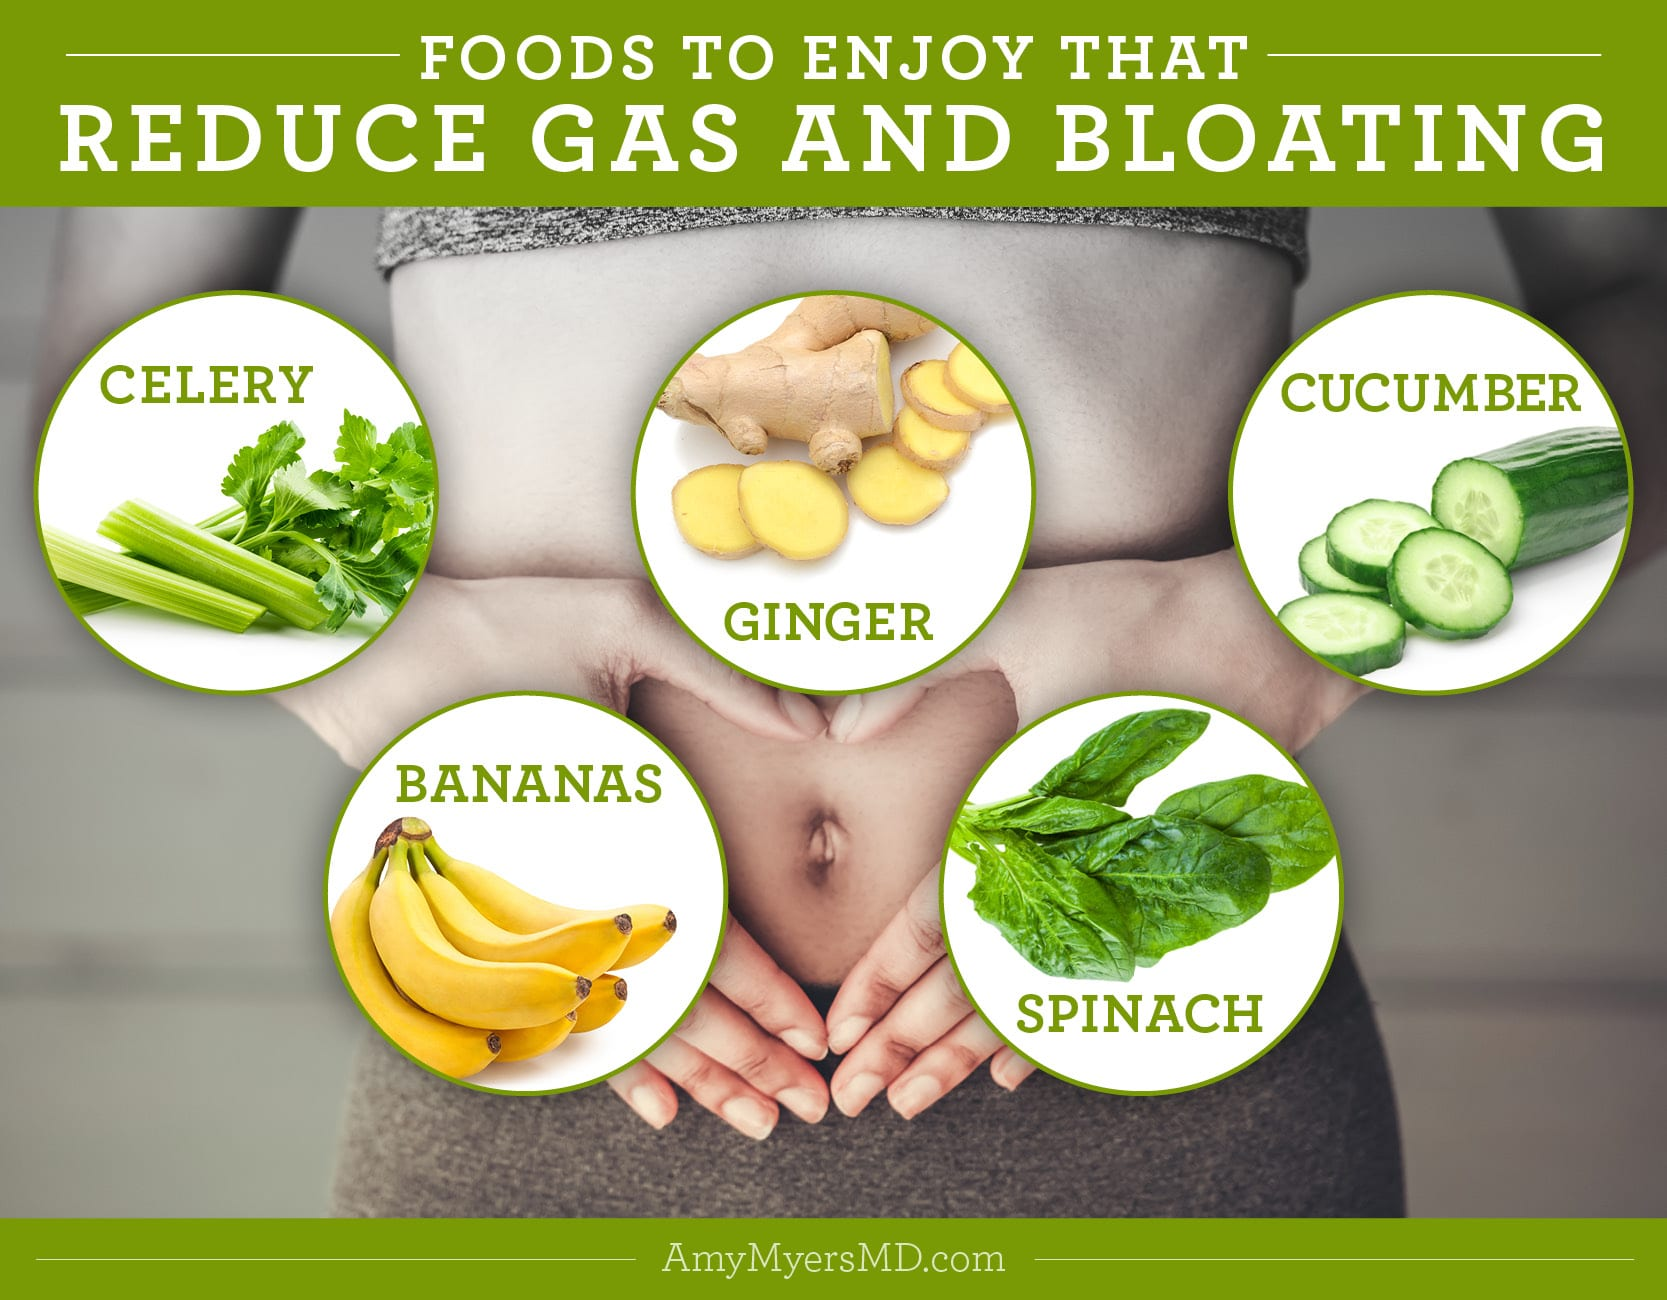 Foods to Enjoy That Reduce Gas and Bloating - Infographic - Amy Myers MD